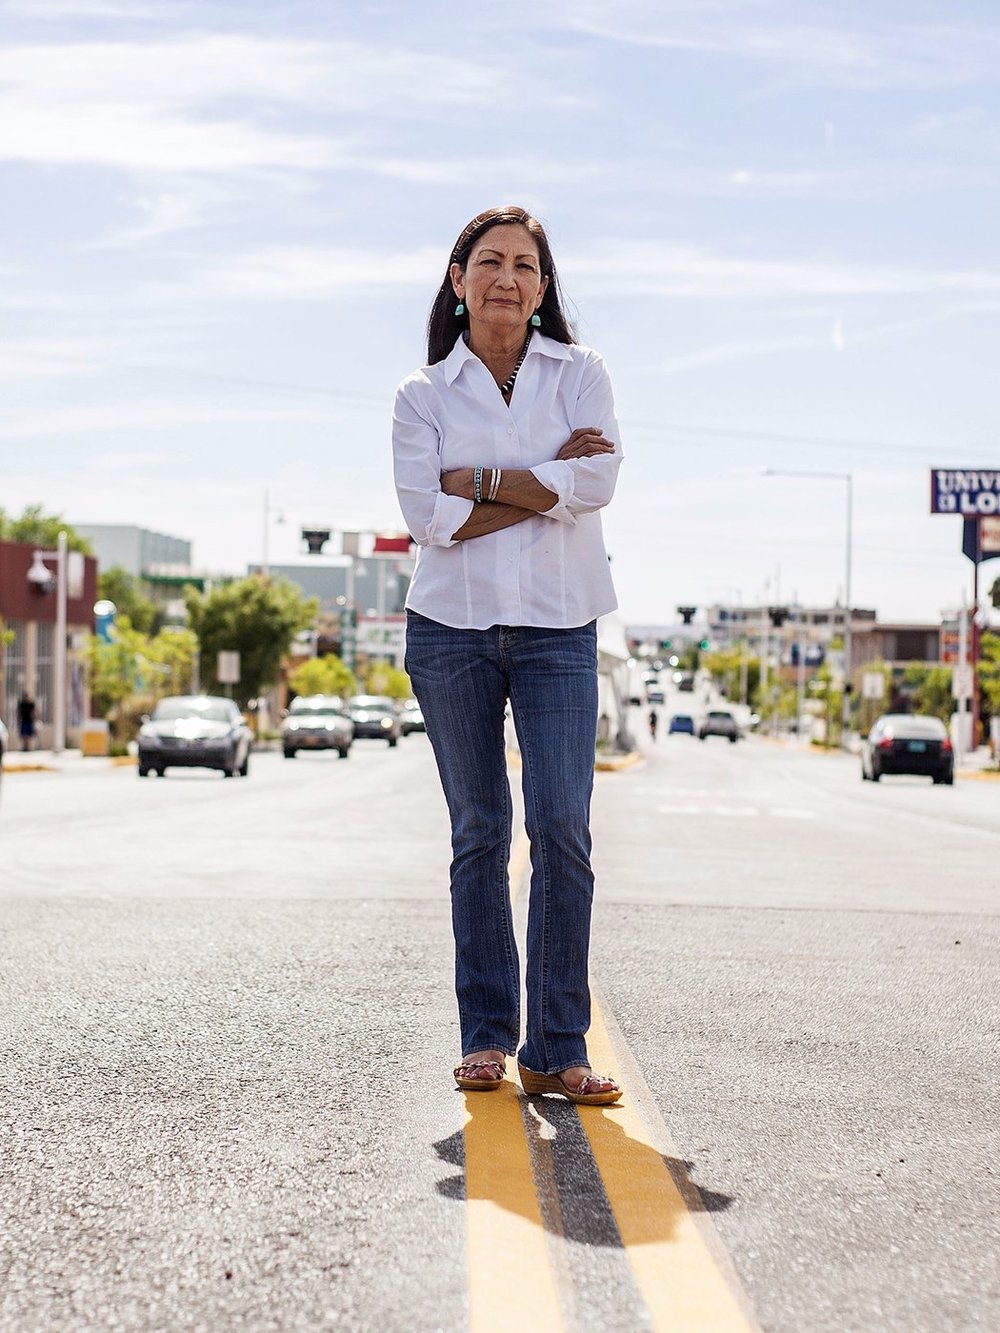 Deb Haaland - One of the First Two Native American Women to be Elected to the United States Congress